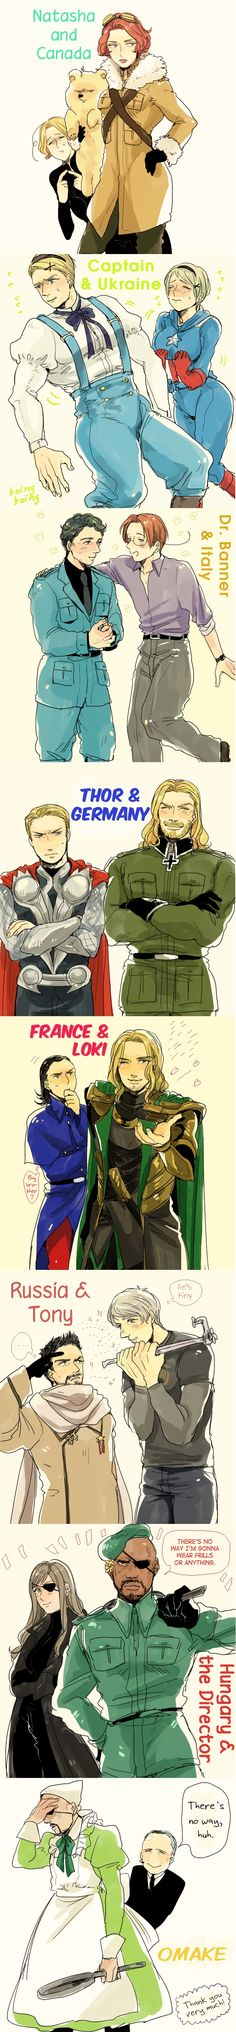 Pffffft. Hahahahahahahahaha! This is awesome! France makes for a sexy Loki LOOOOOOOOOL